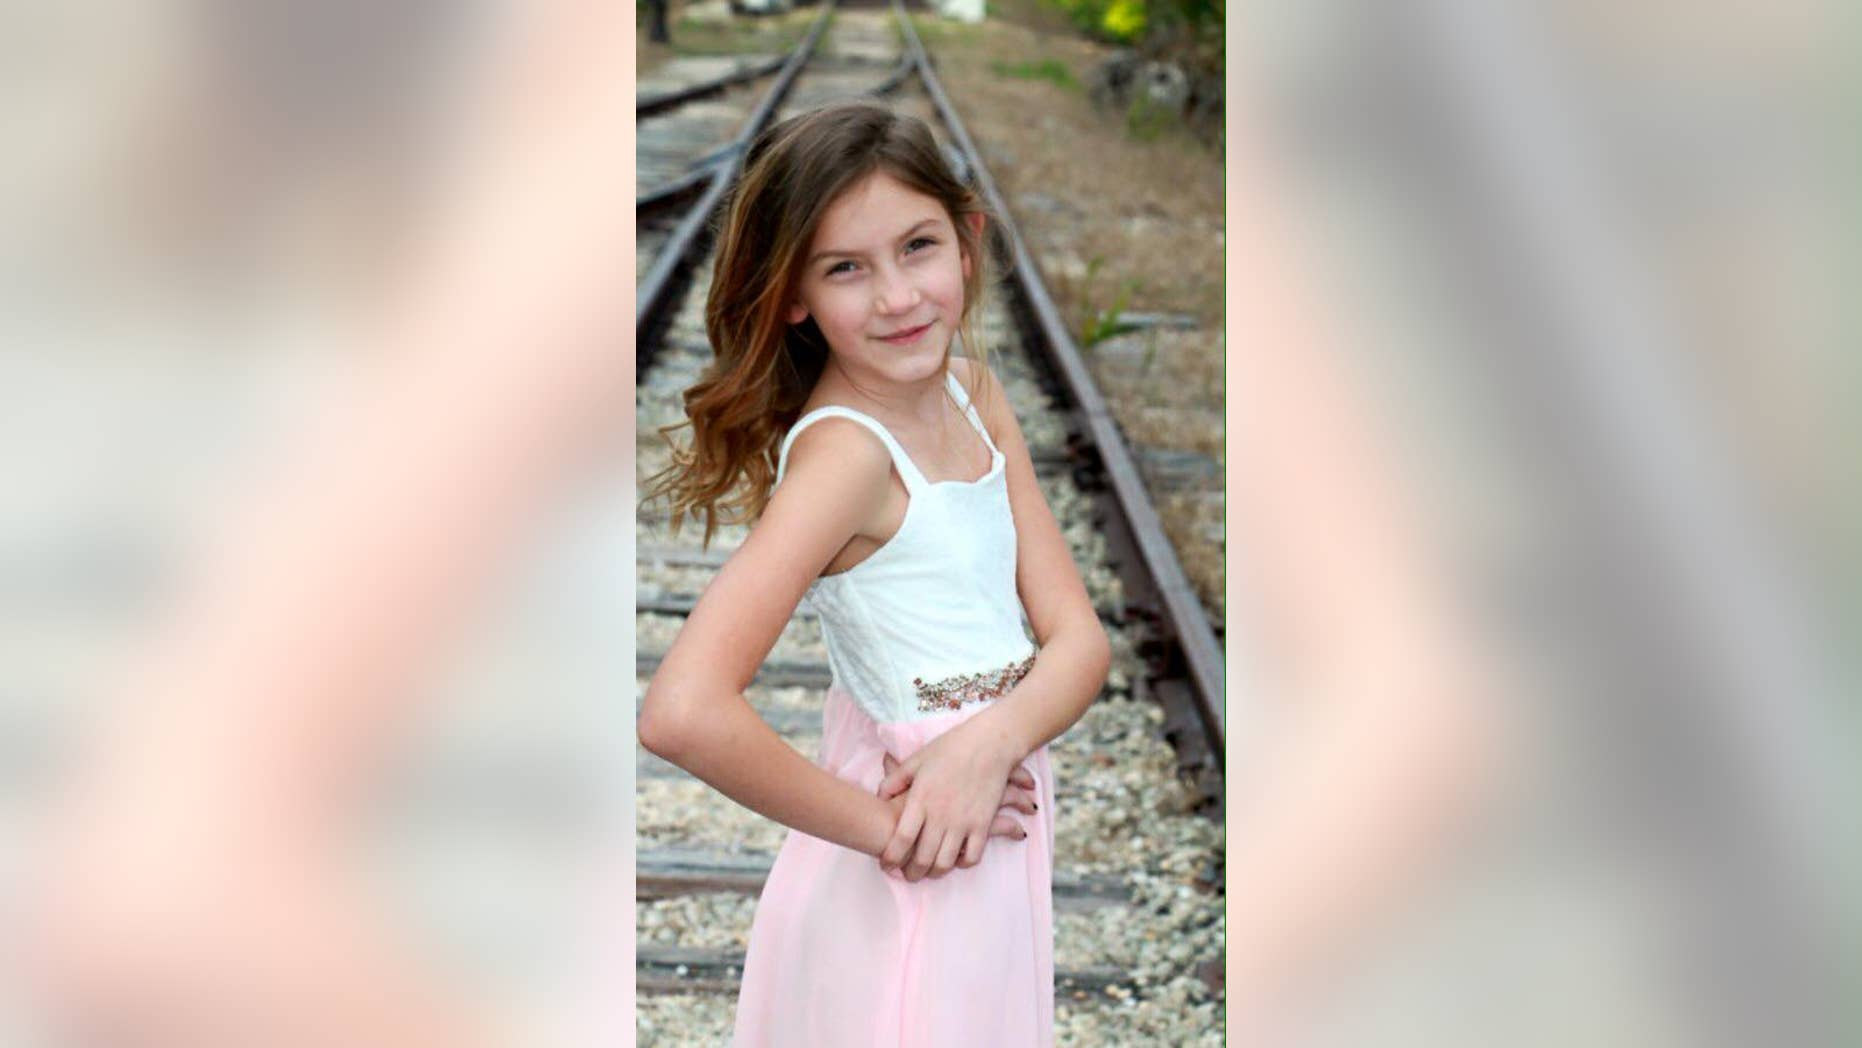 Isabella Mading, 10, died Saturday, Feb. 6, after a battle with brain cancer linked to the inherited condition Lynch syndrome.